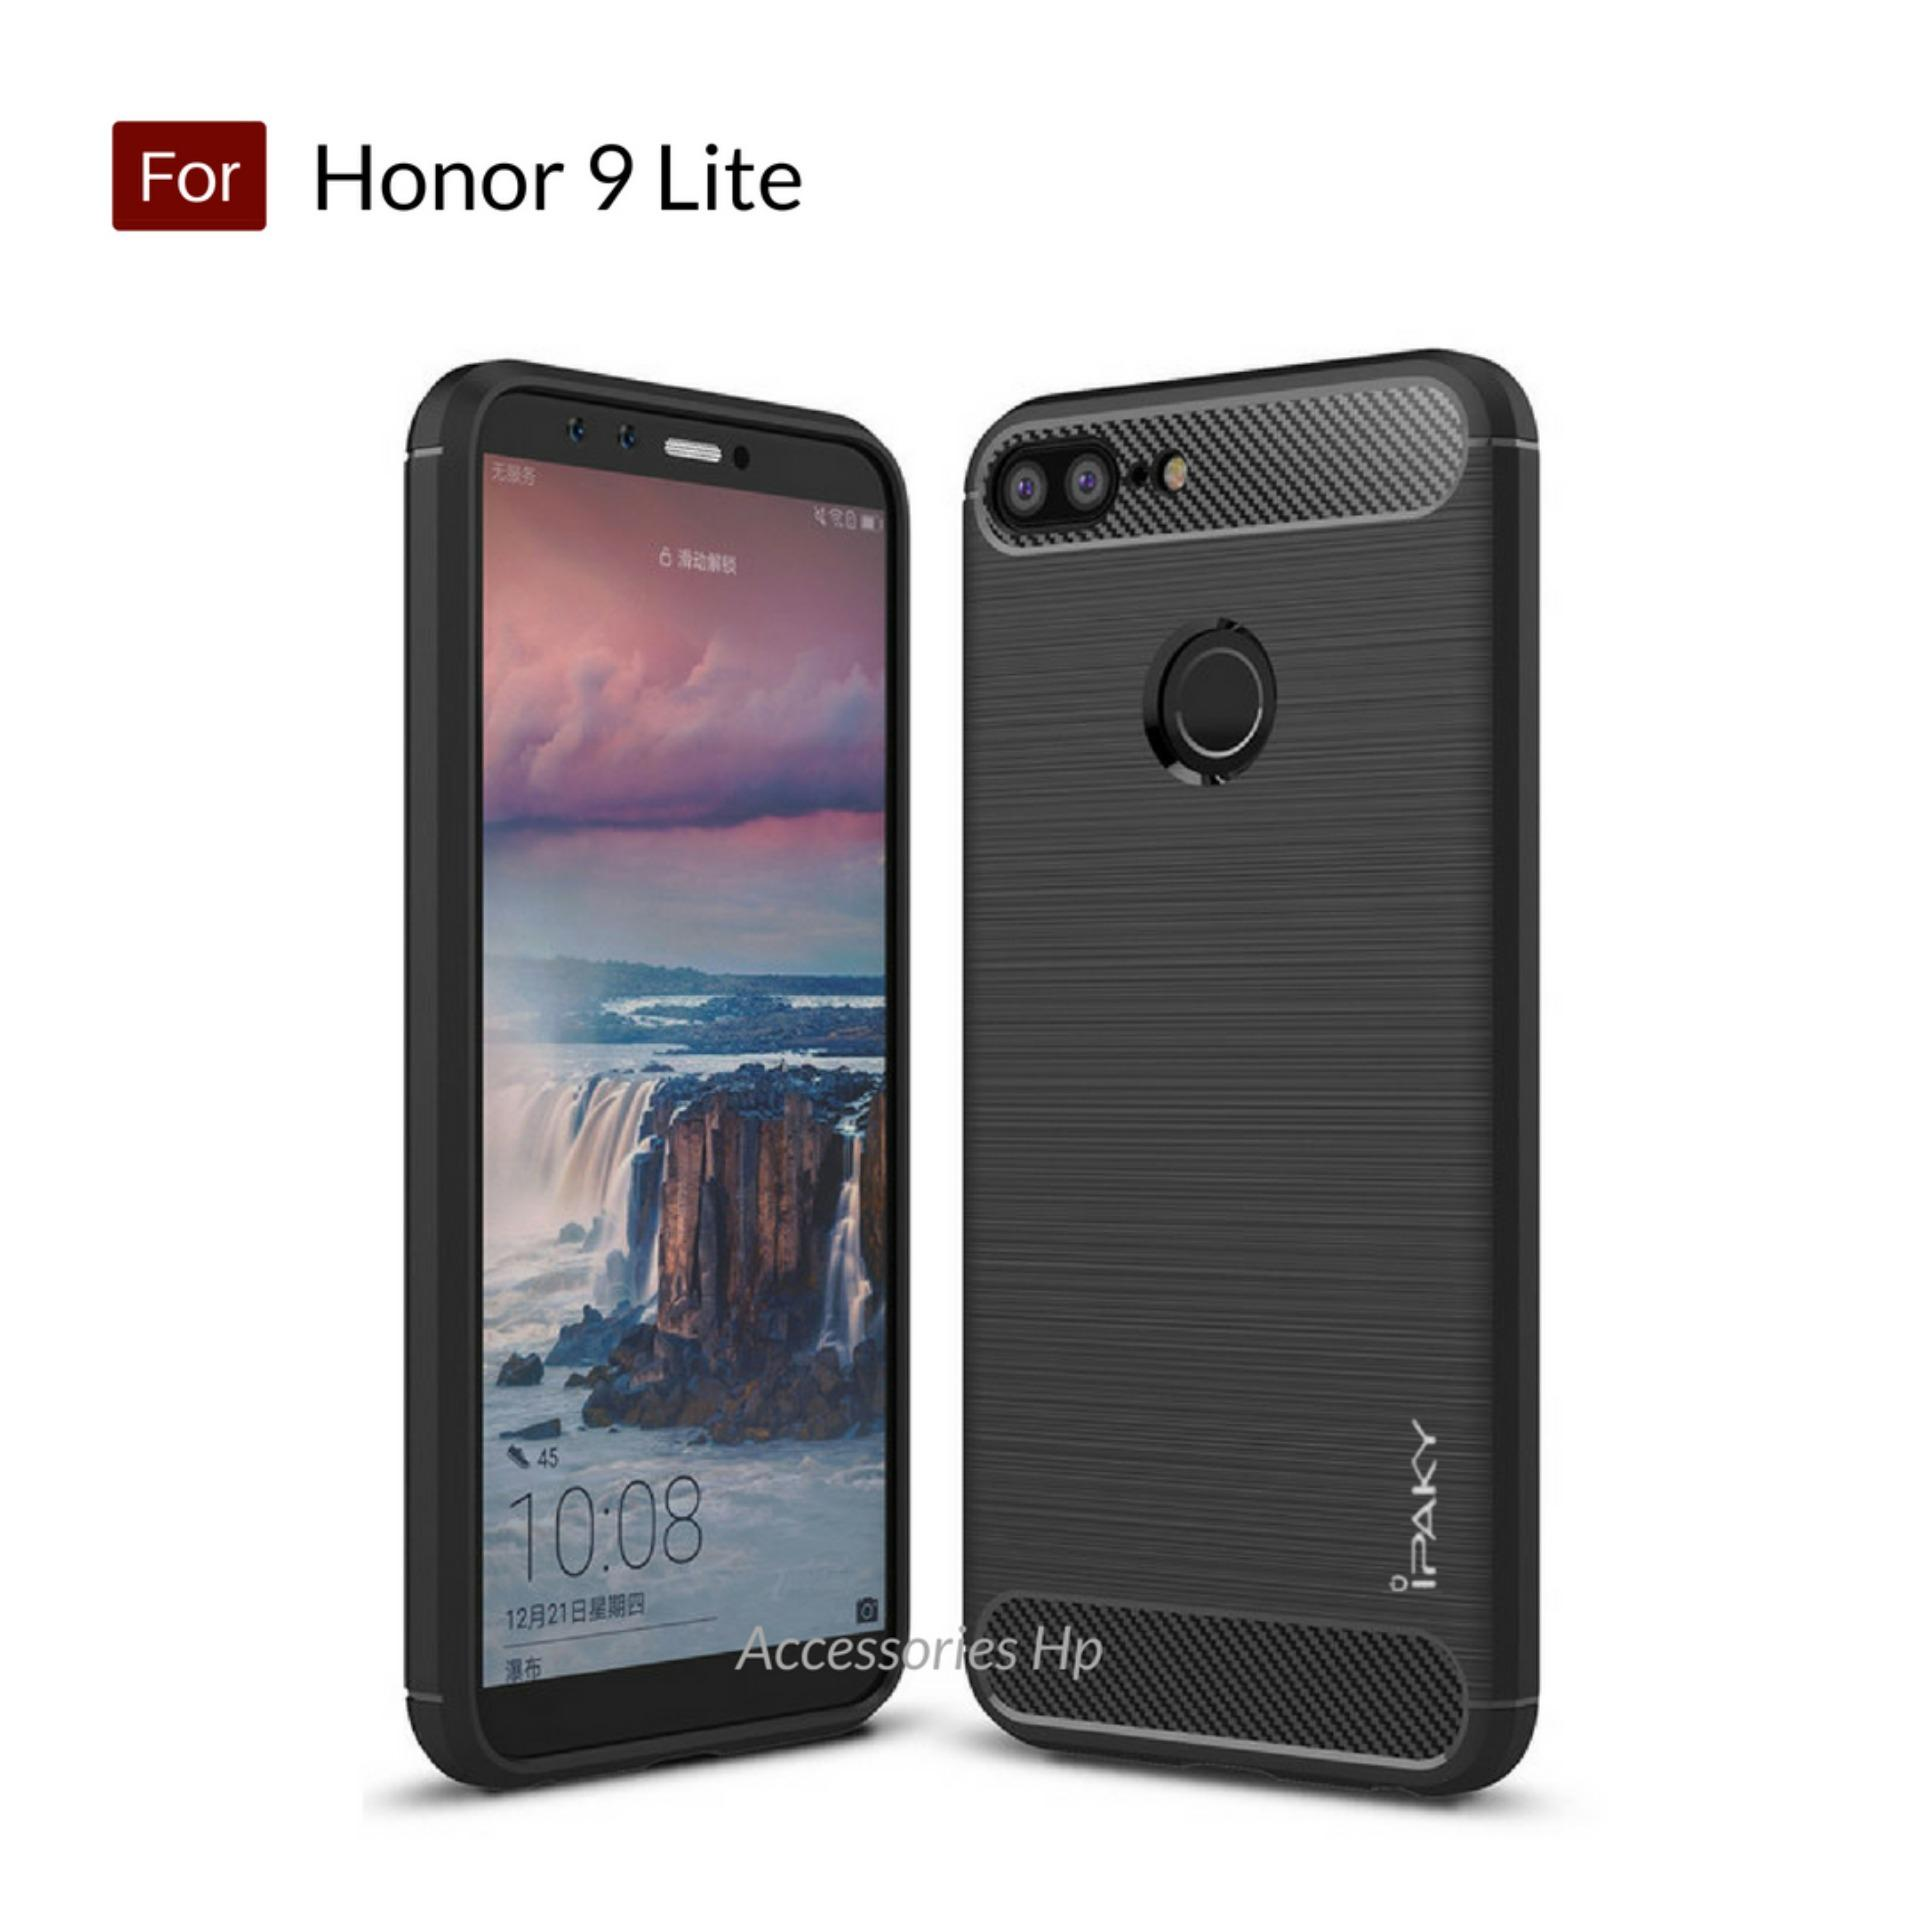 Accessories HP Premium Quality Carbon Shockproof Hybrid Case For Huawei Honor 9 Lite - Black